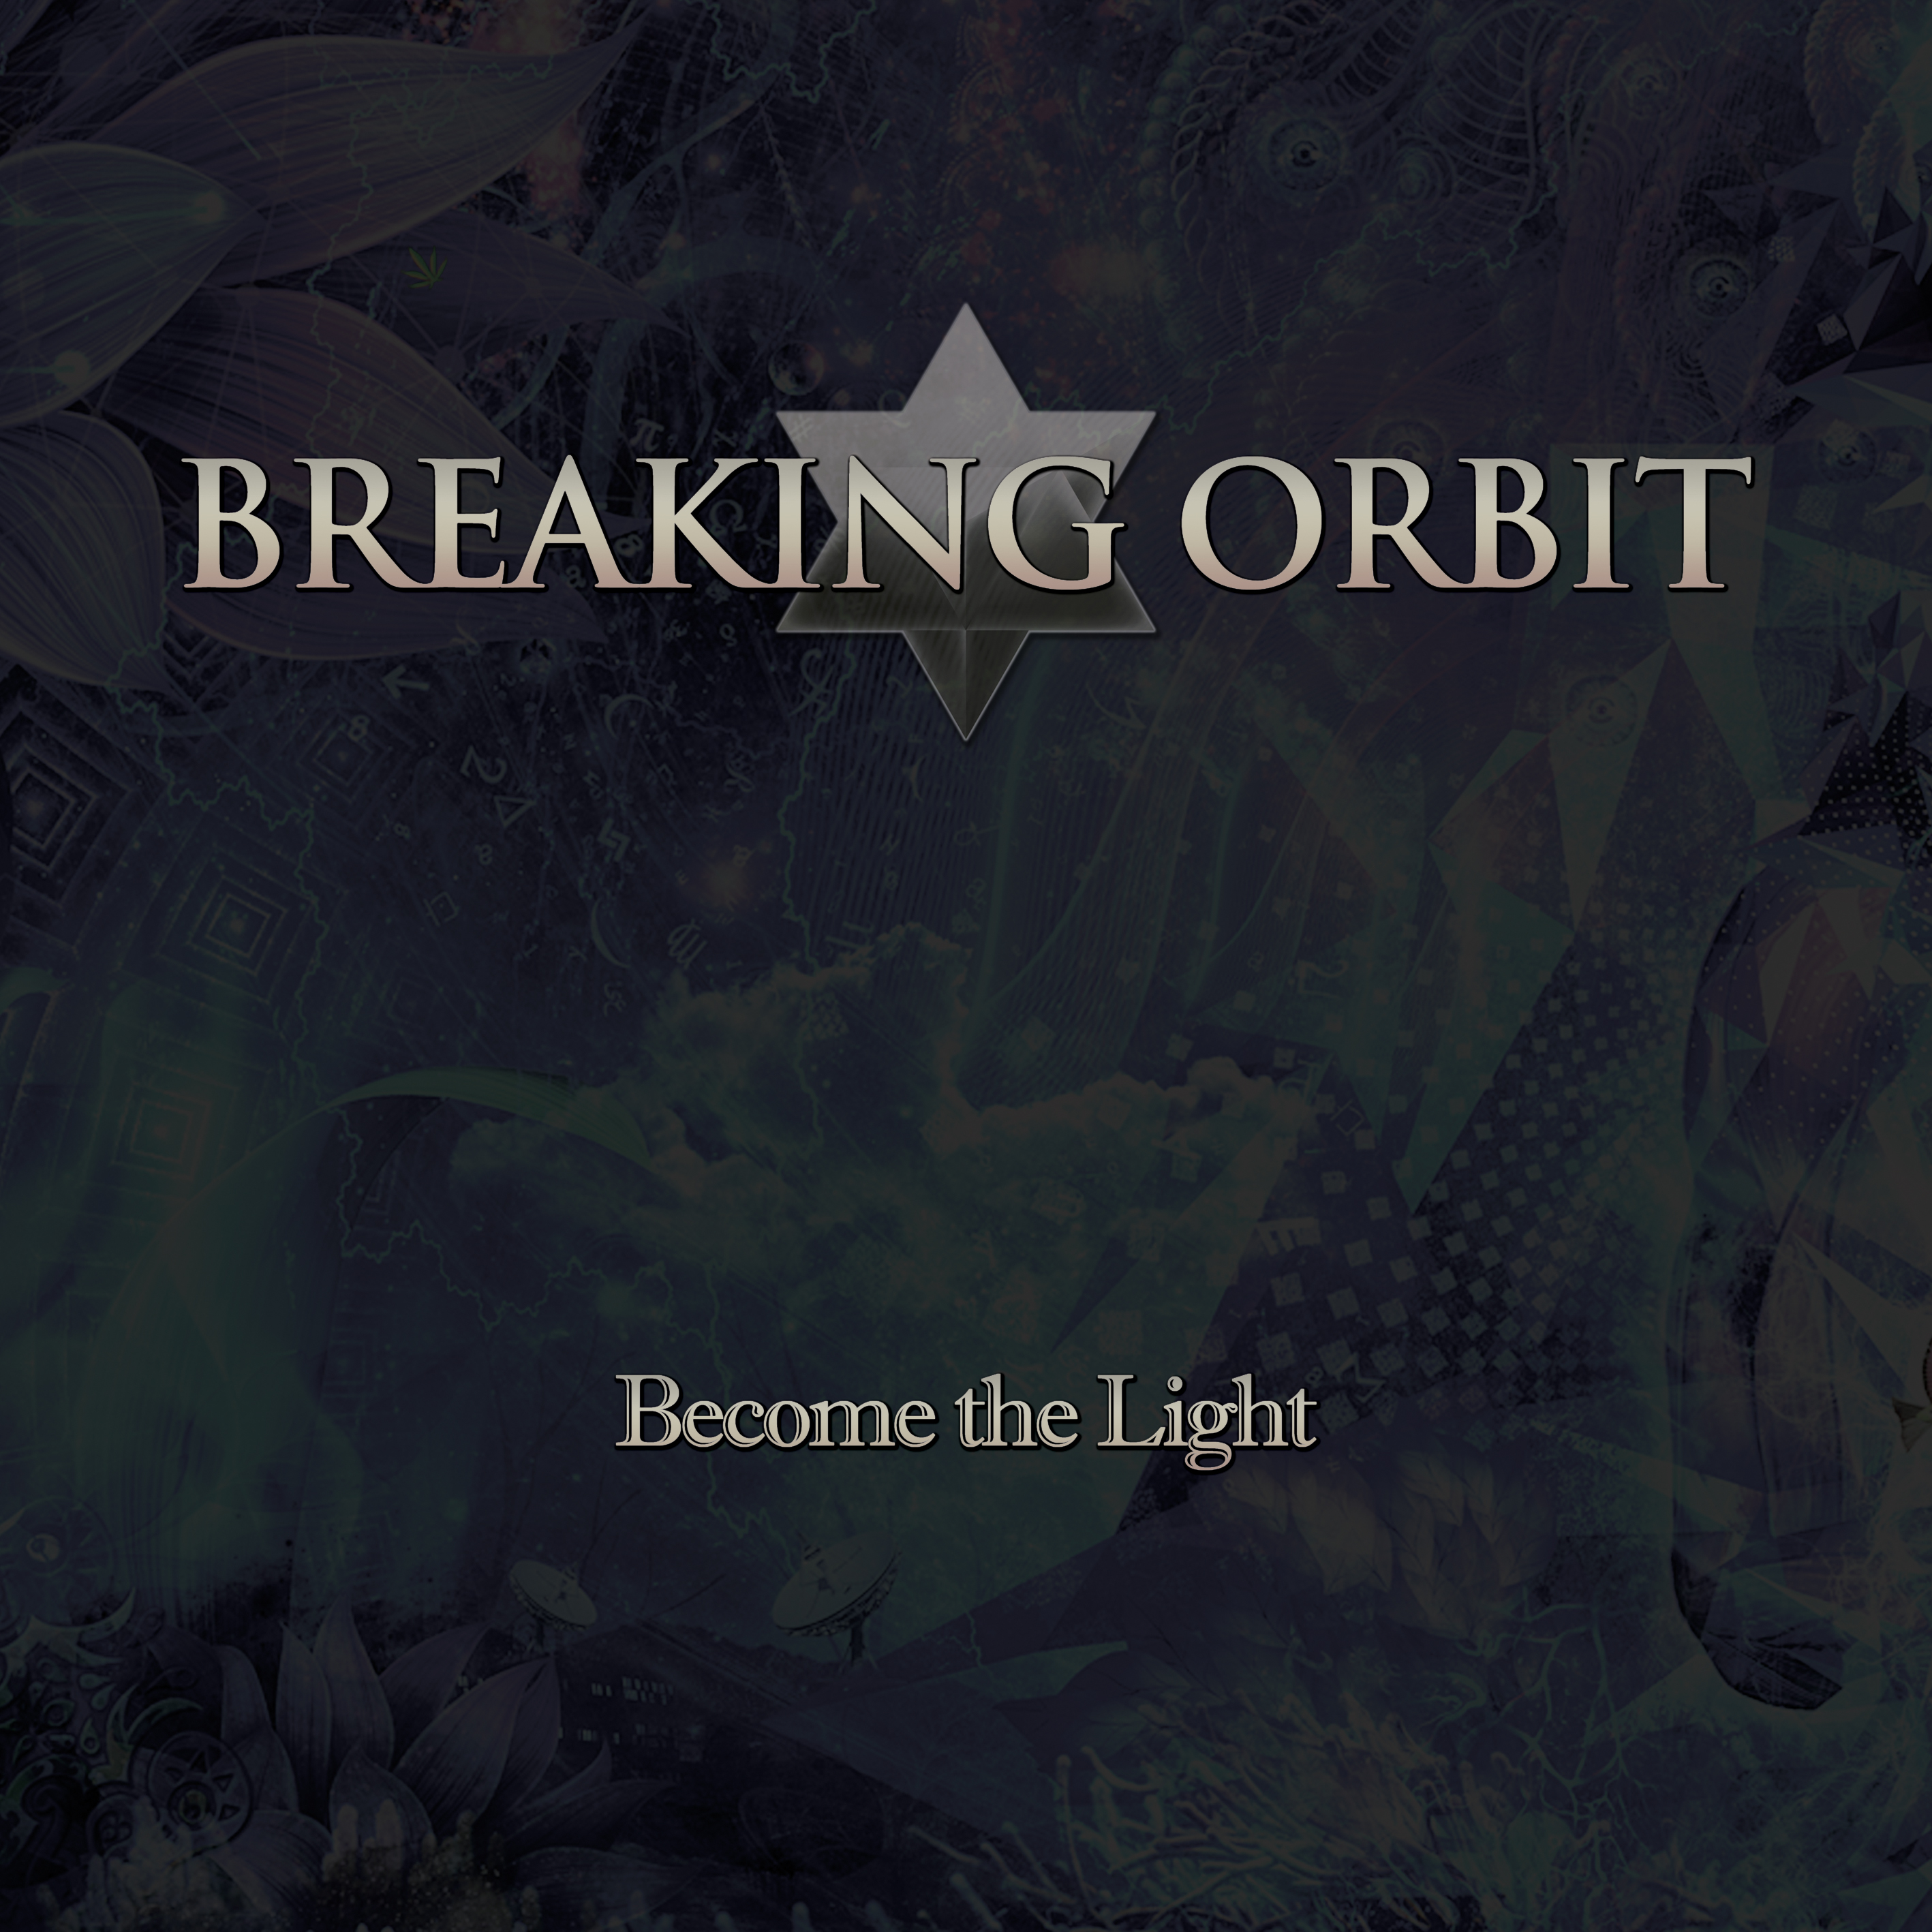 Become the Light - MP3 download - Breaking Orbit